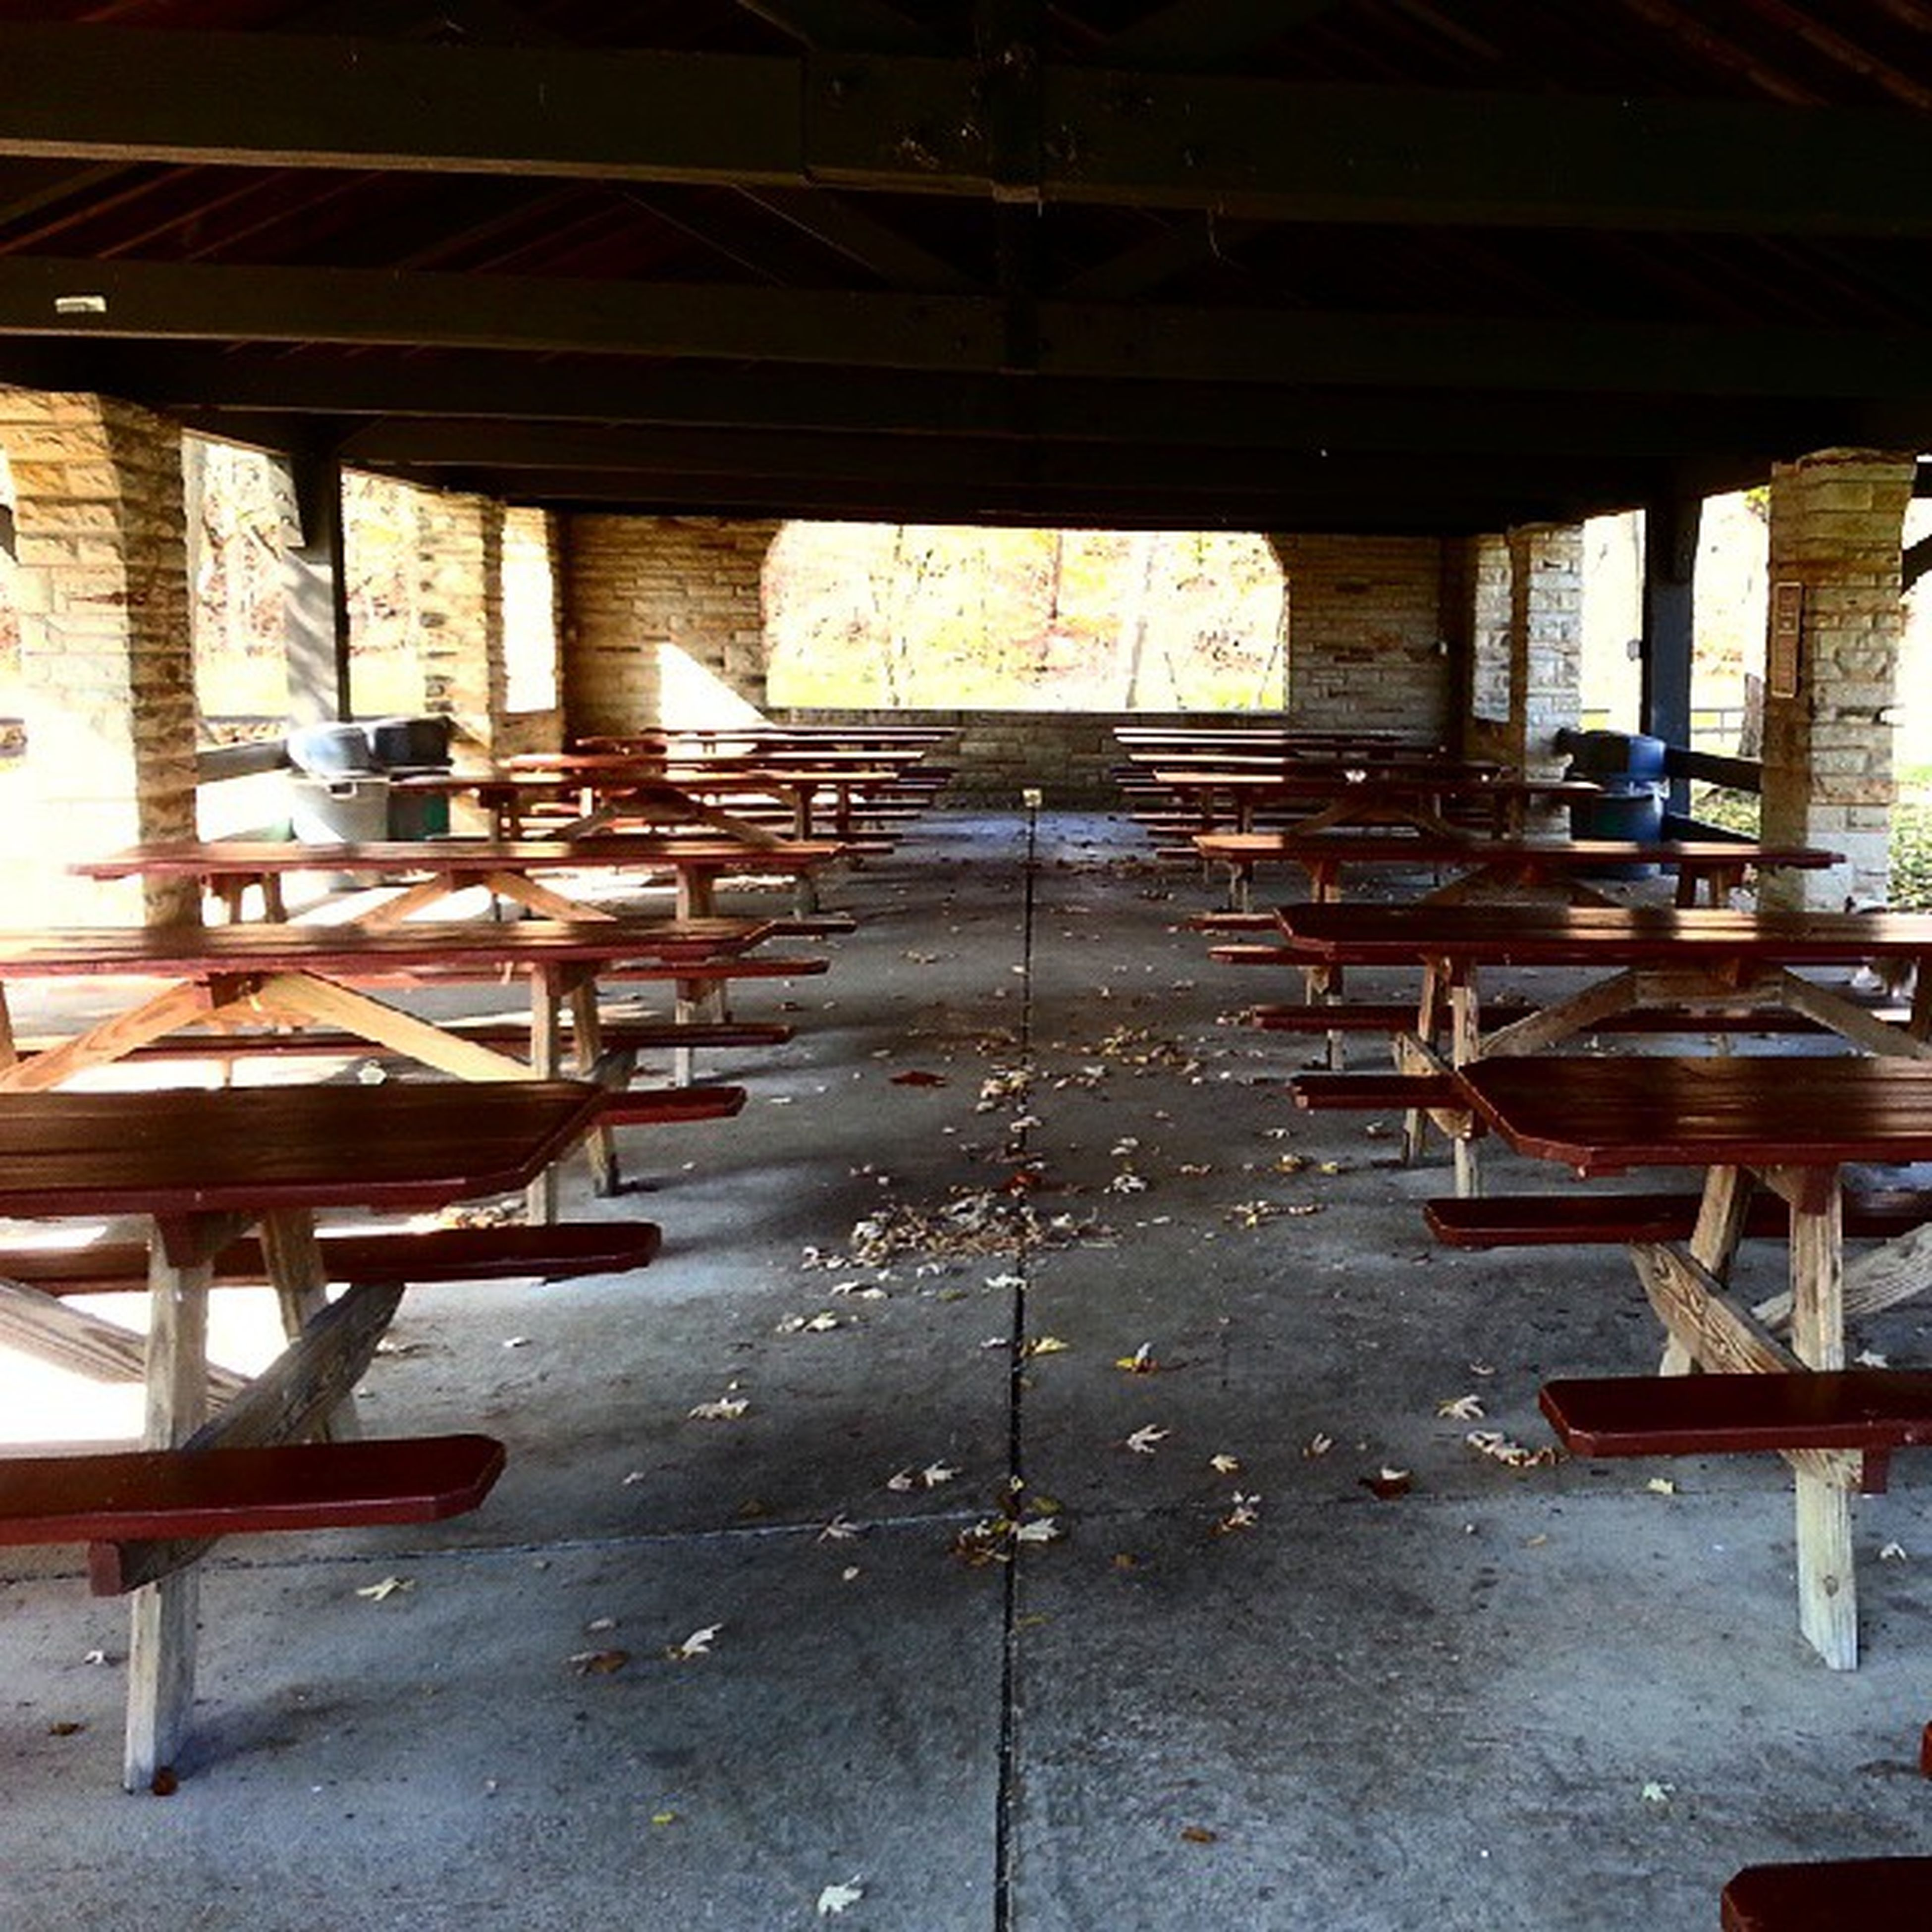 indoors, built structure, architecture, old, chair, architectural column, wood - material, place of worship, interior, religion, spirituality, table, abandoned, no people, absence, day, temple - building, empty, old-fashioned, metal